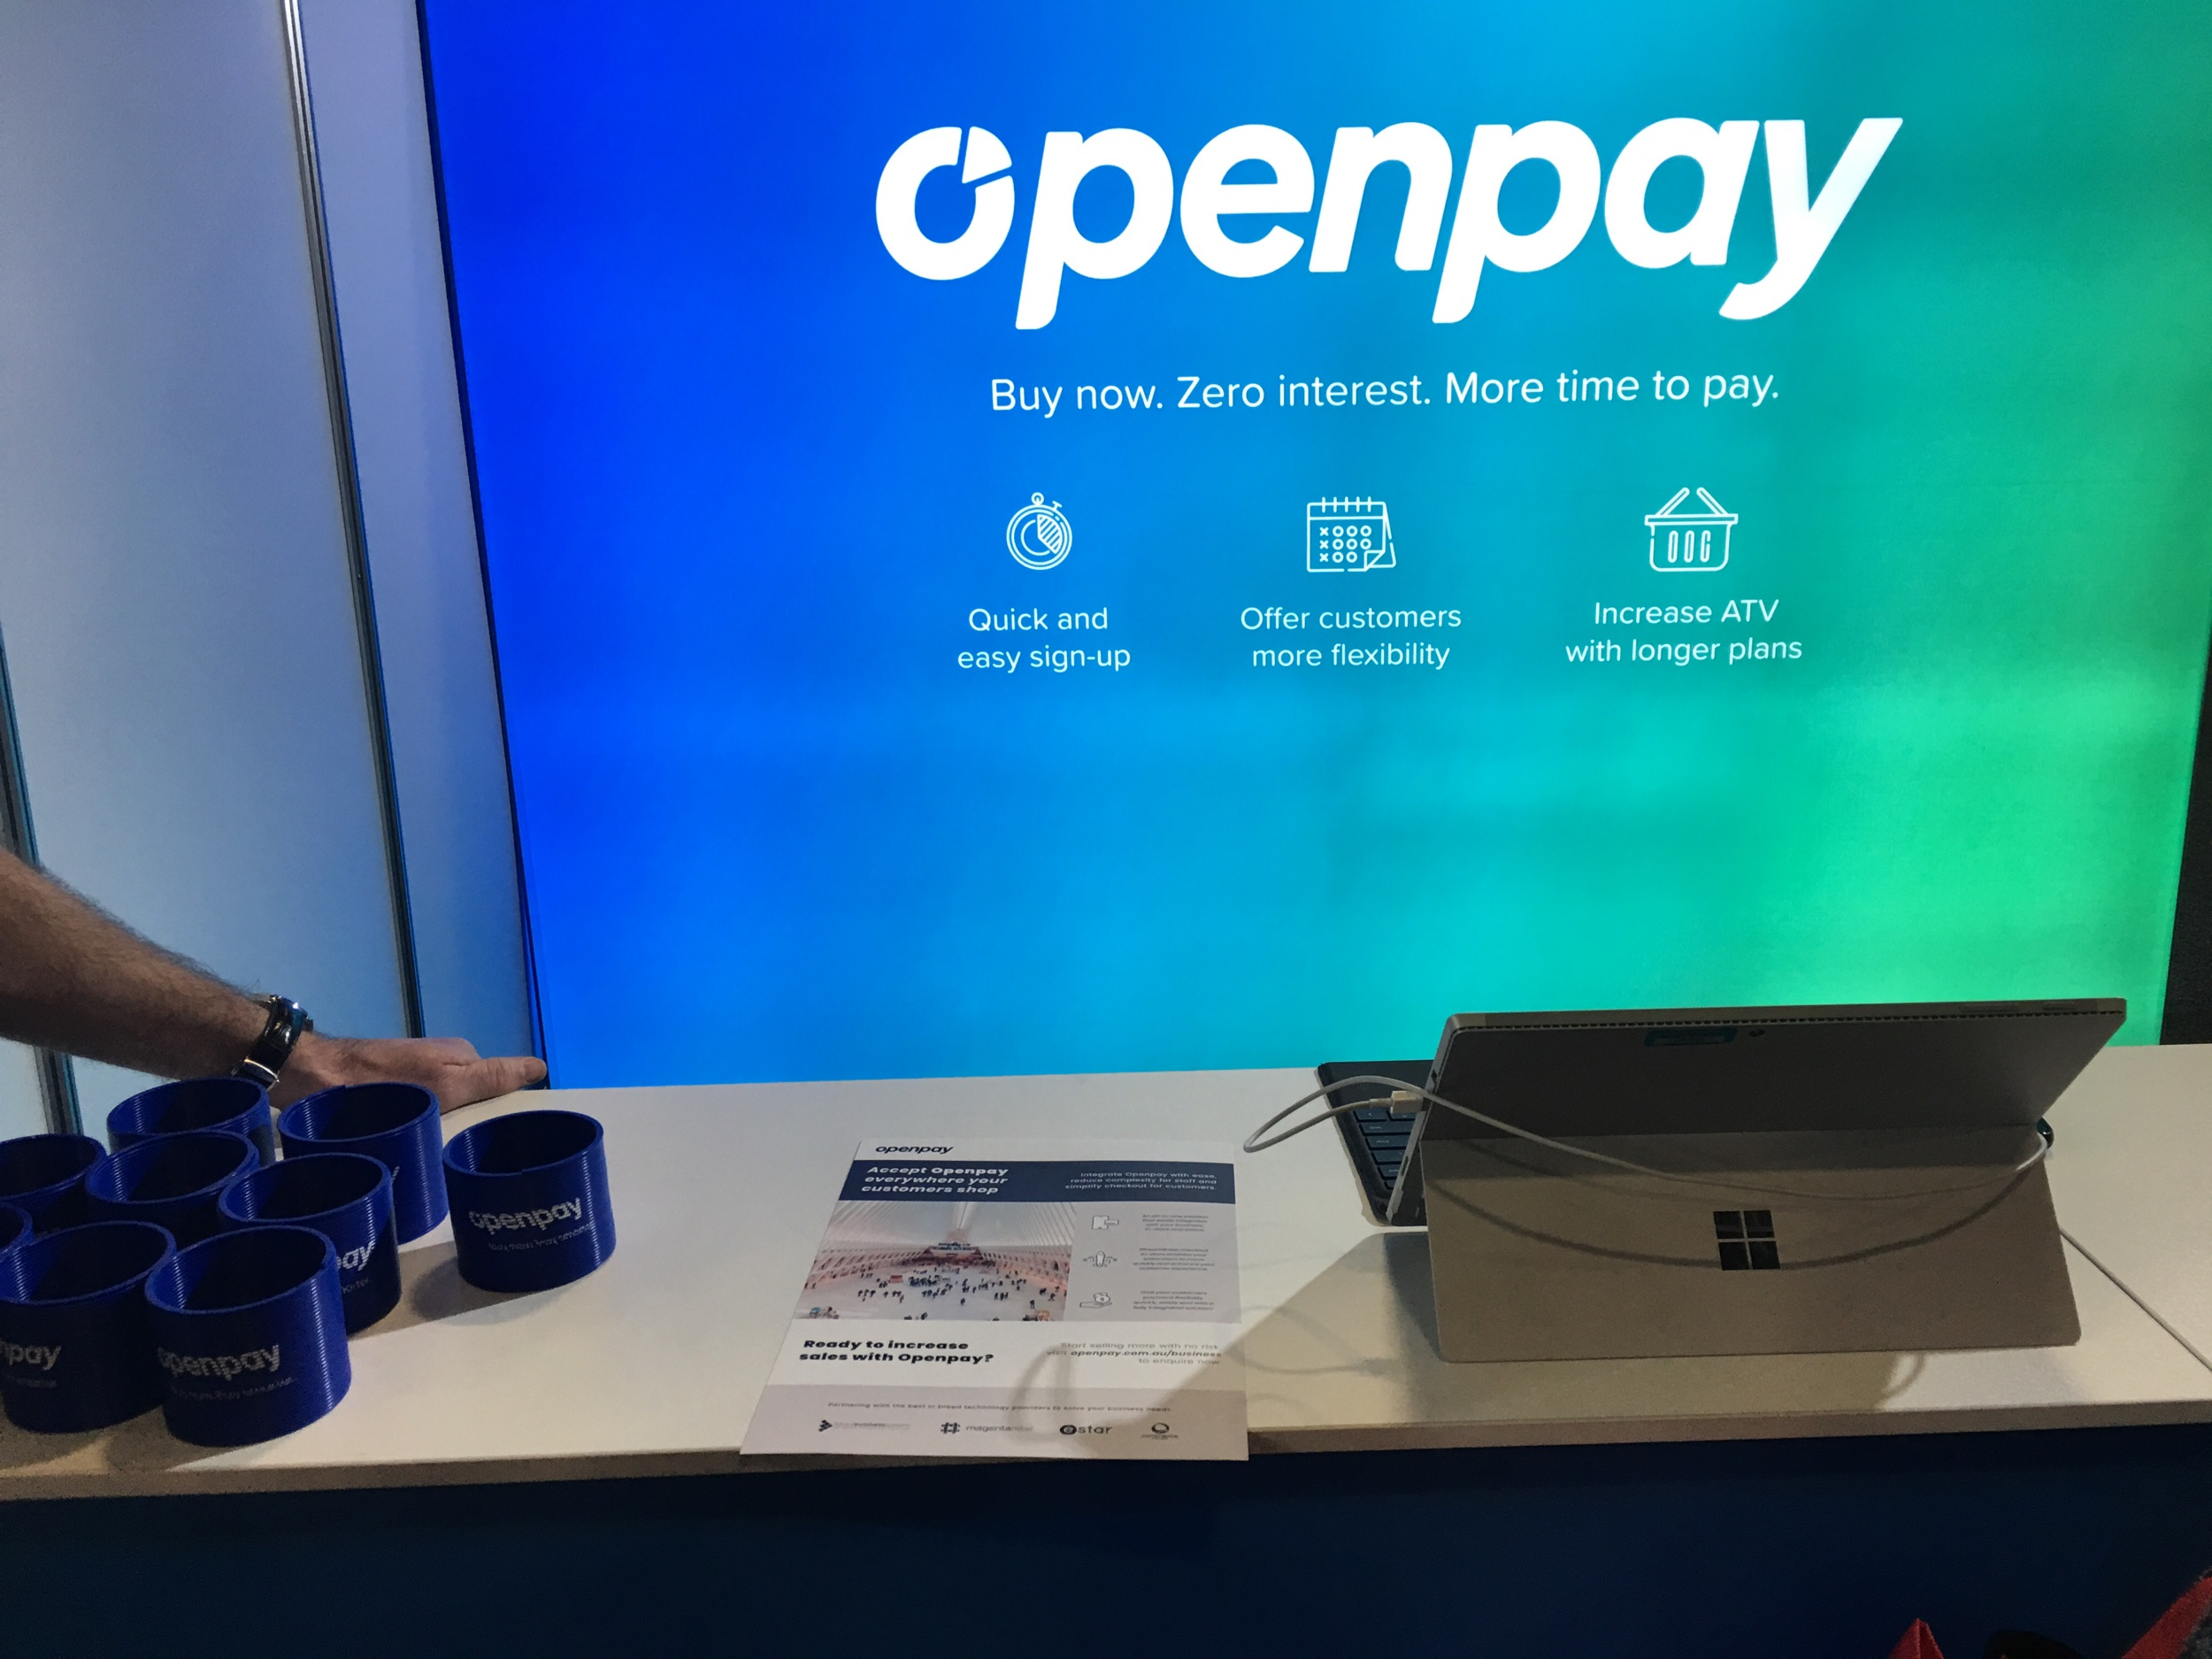 Openpay - Buy Now Pay Later Service